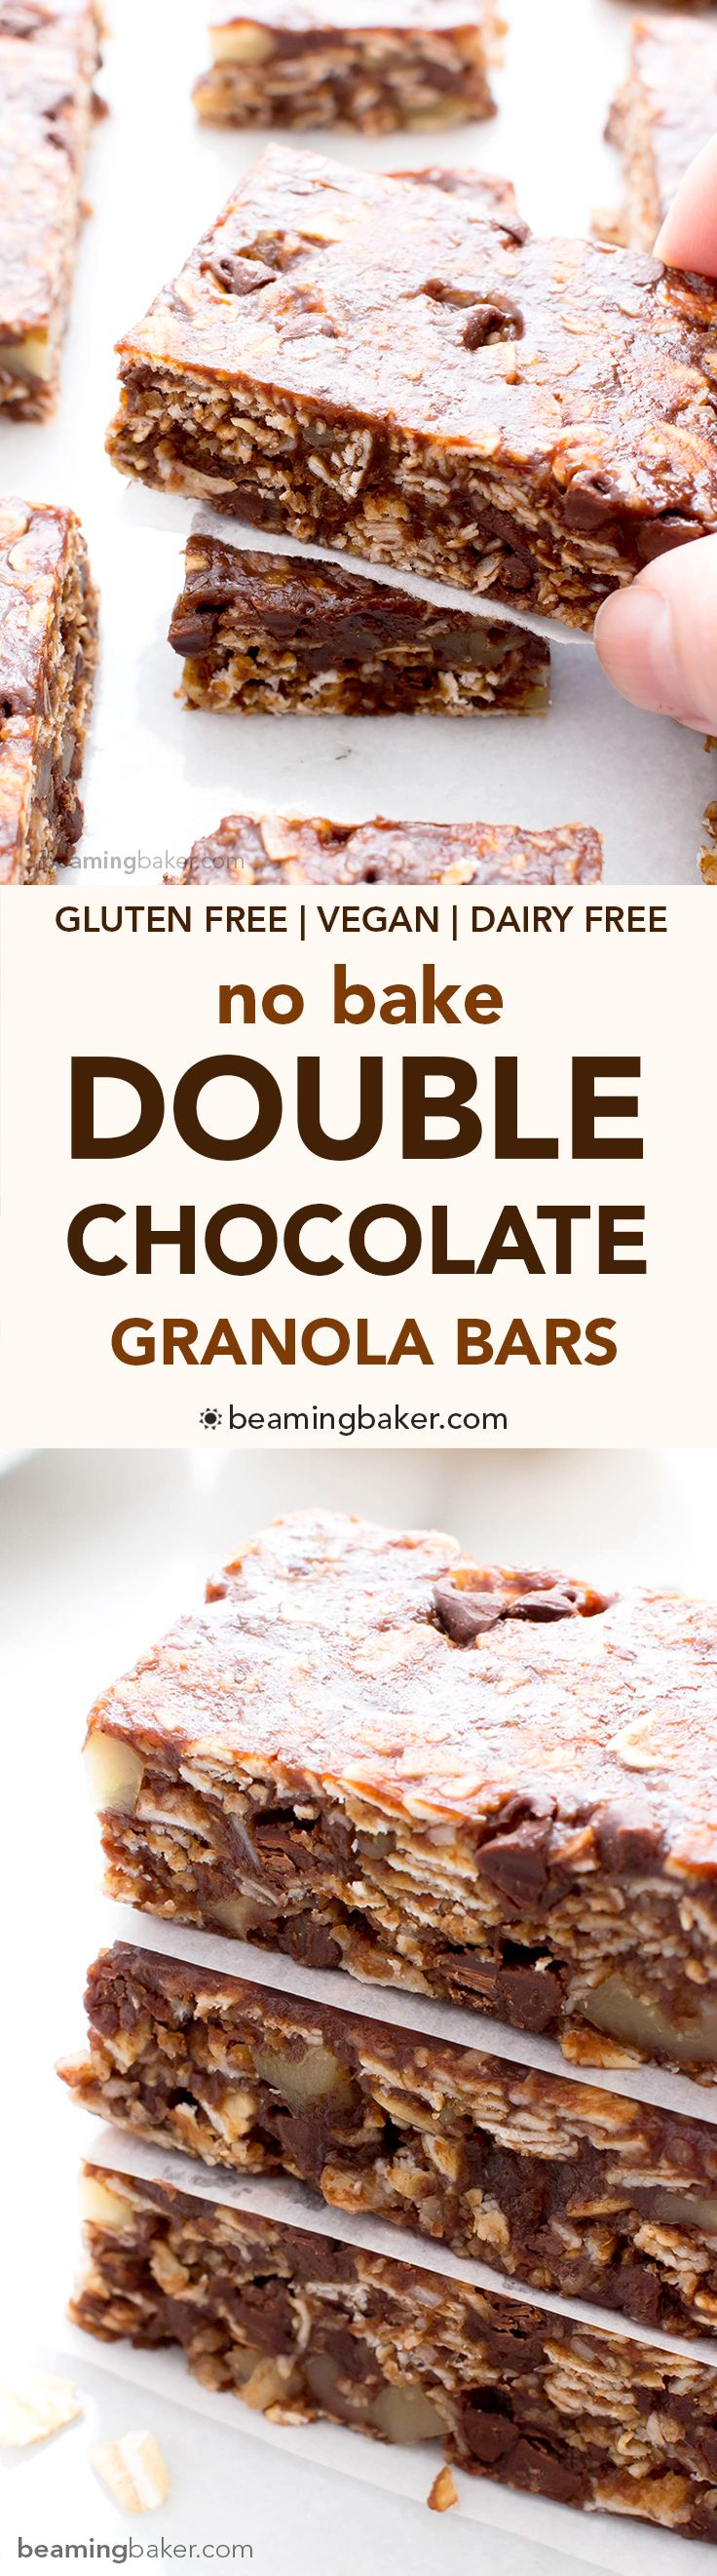 No Bake Double Chocolate Chip Granola Bars (V+GF): an easy recipe for chewy double chocolate granola bars made with simple ingredients. Vegan, Gluten Free.